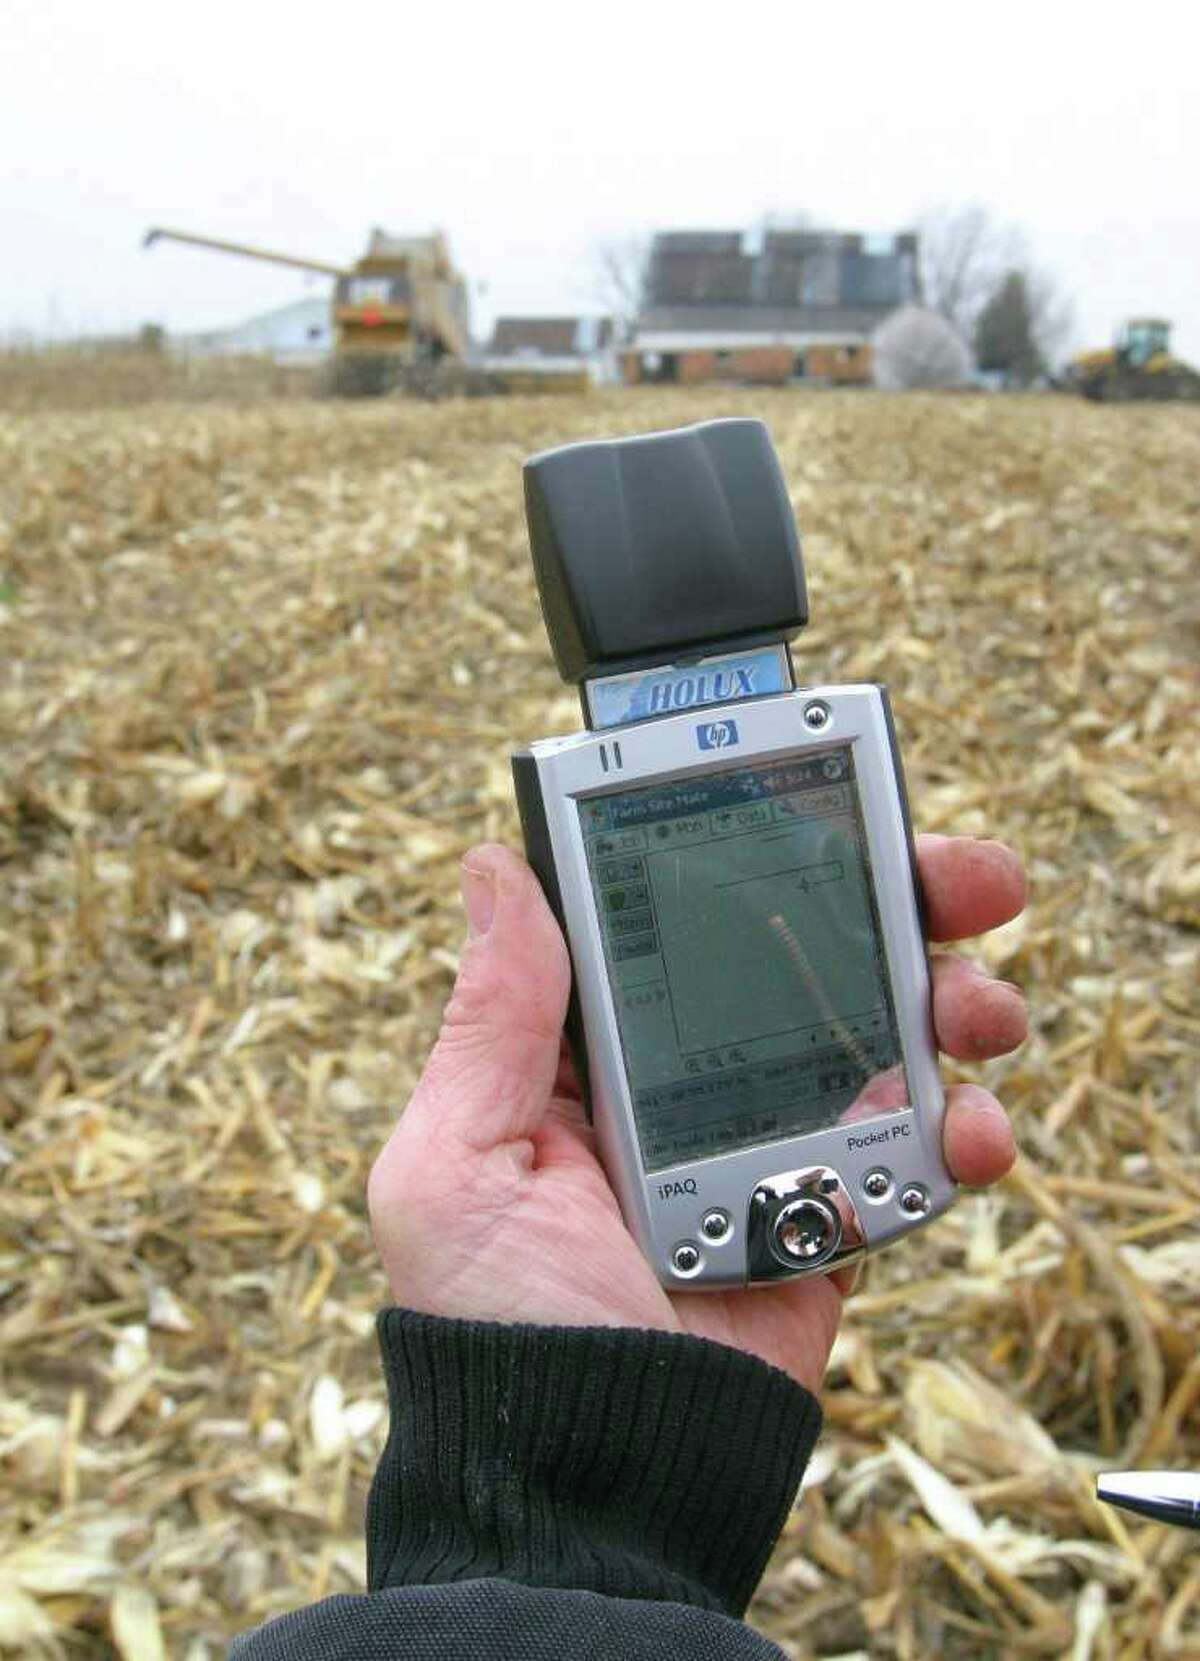 DANIEL MILLER : ASSOCIATED PRESS FARM AID: Brian Watkins uses a device with a GPS receiver to create maps to record different seed and fertilizer combinations in his Kenton, Ohio, farm fields. Some farmers fear a new network will interfere with GPS signals.